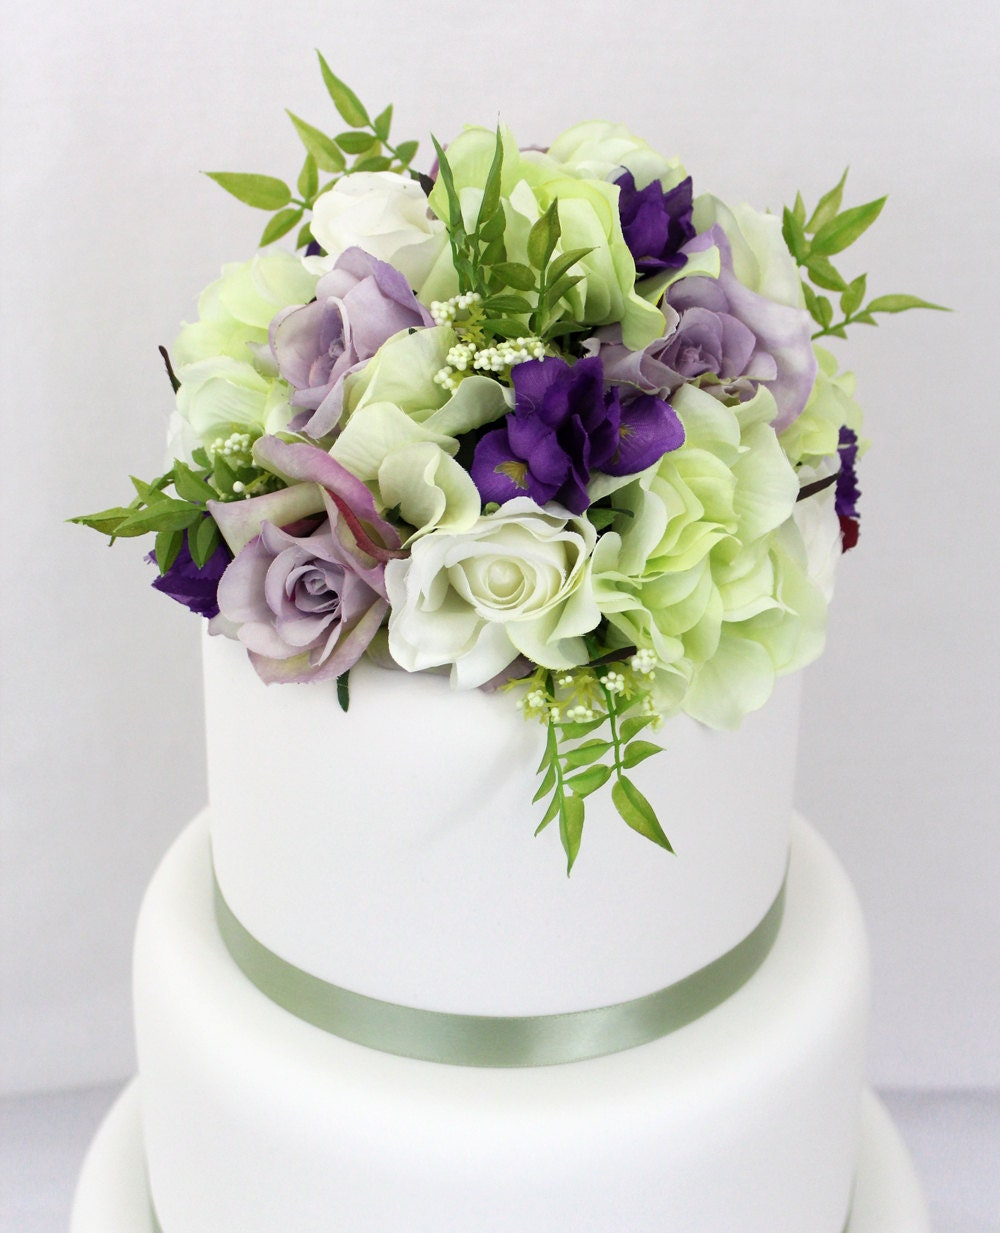 Wedding Cake Tops With Silk Flowers